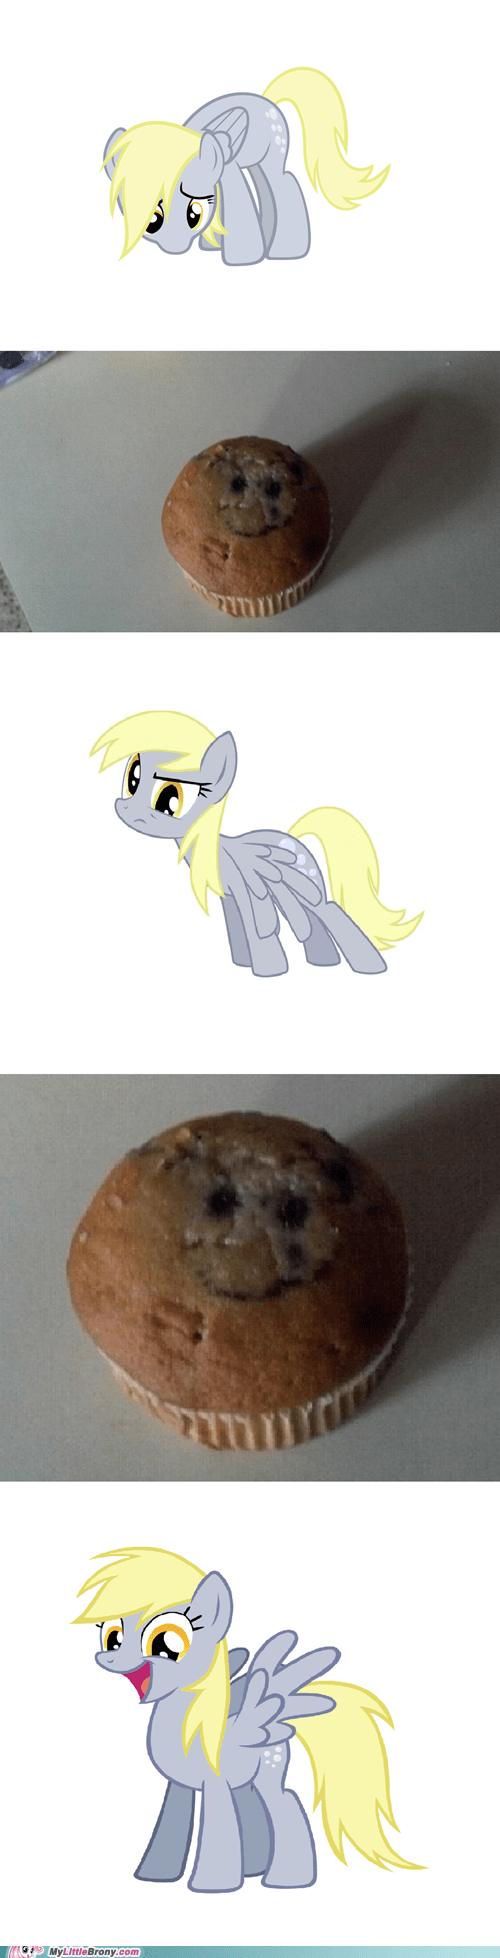 derpy hooves muffins funny - 7492480000